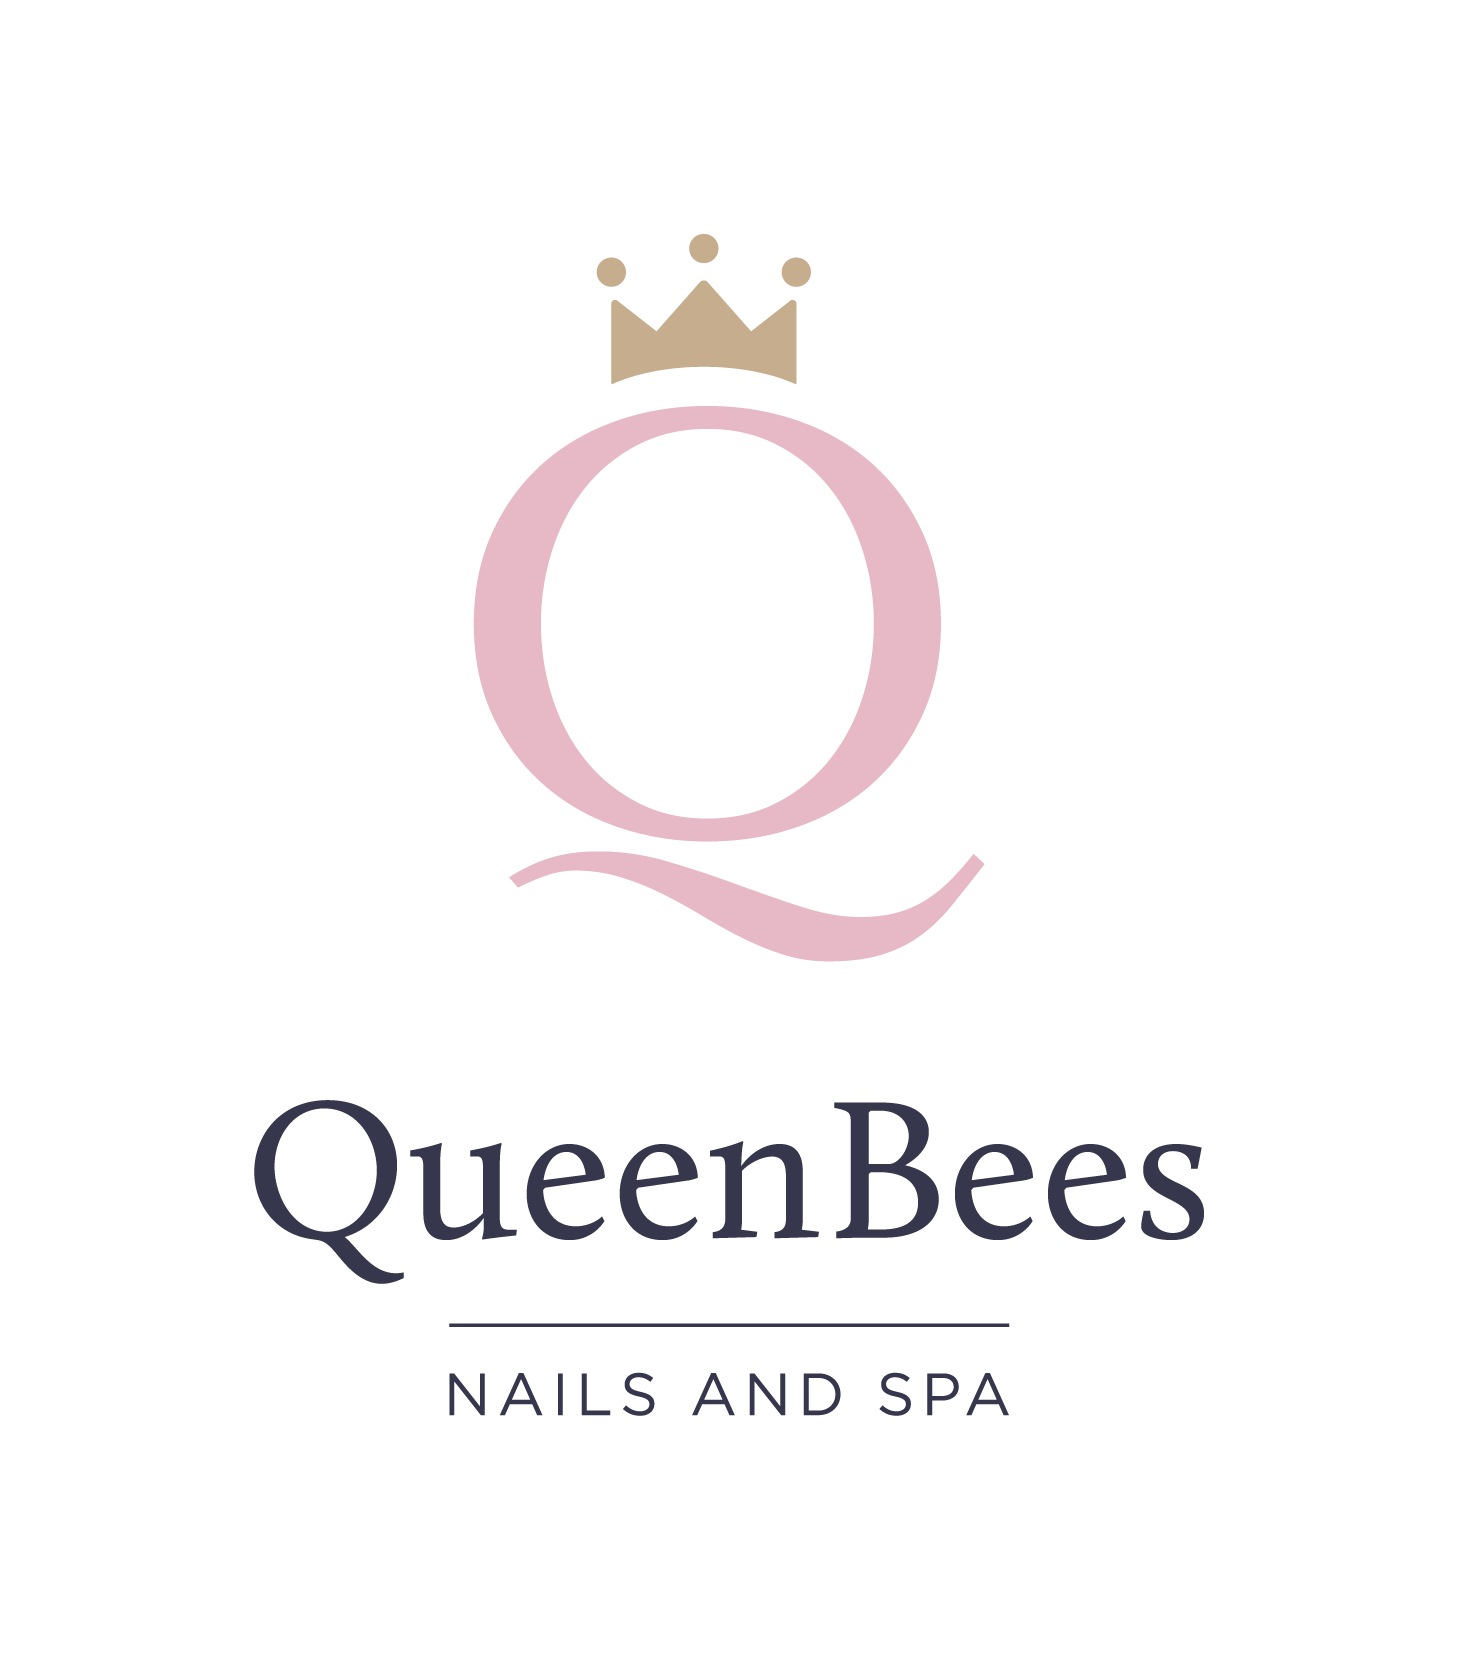 Logo Nails and Spa white background